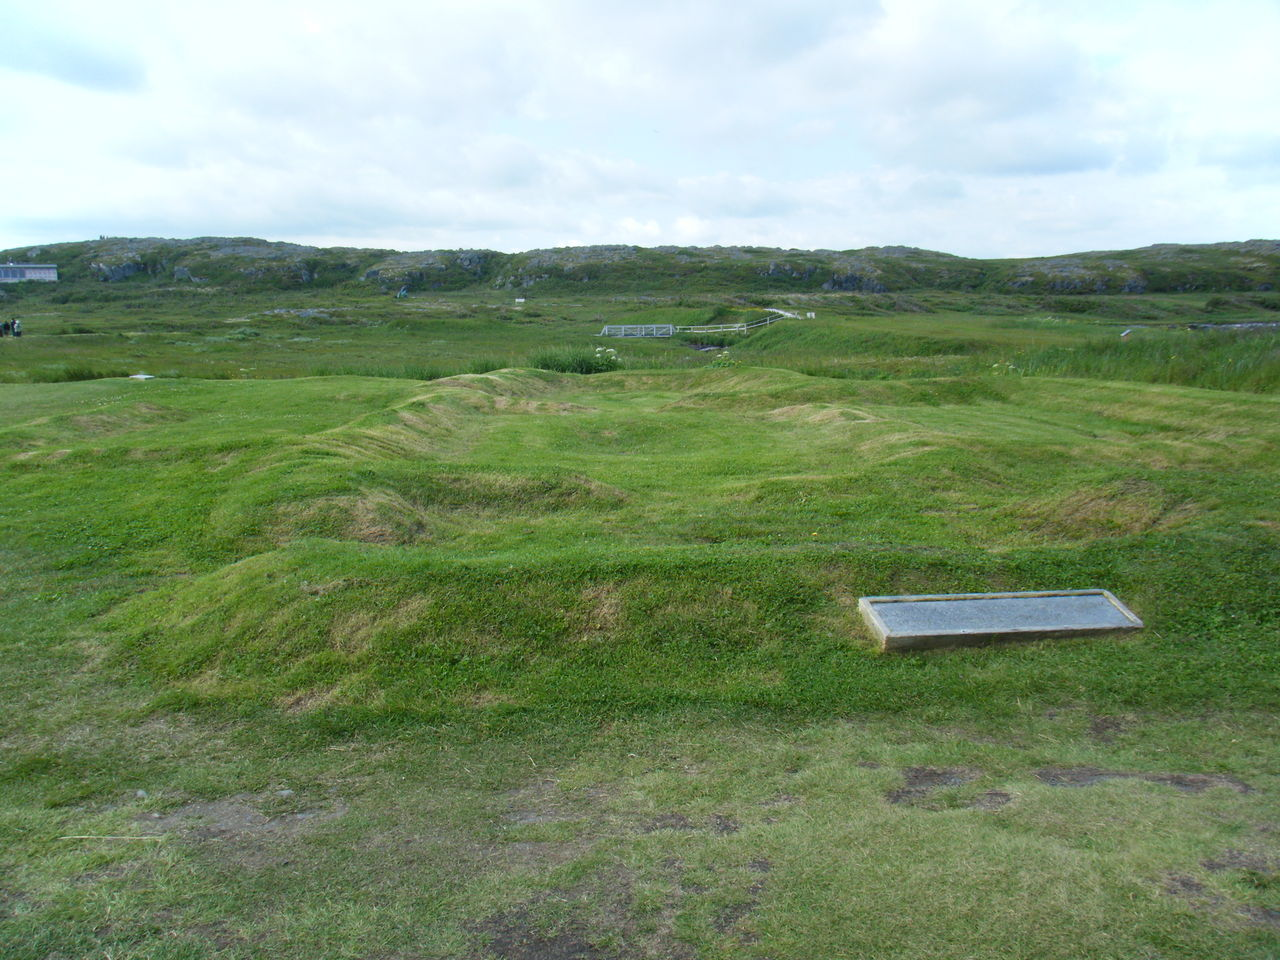 Another site in Newfoundland connected to early Viking explorers